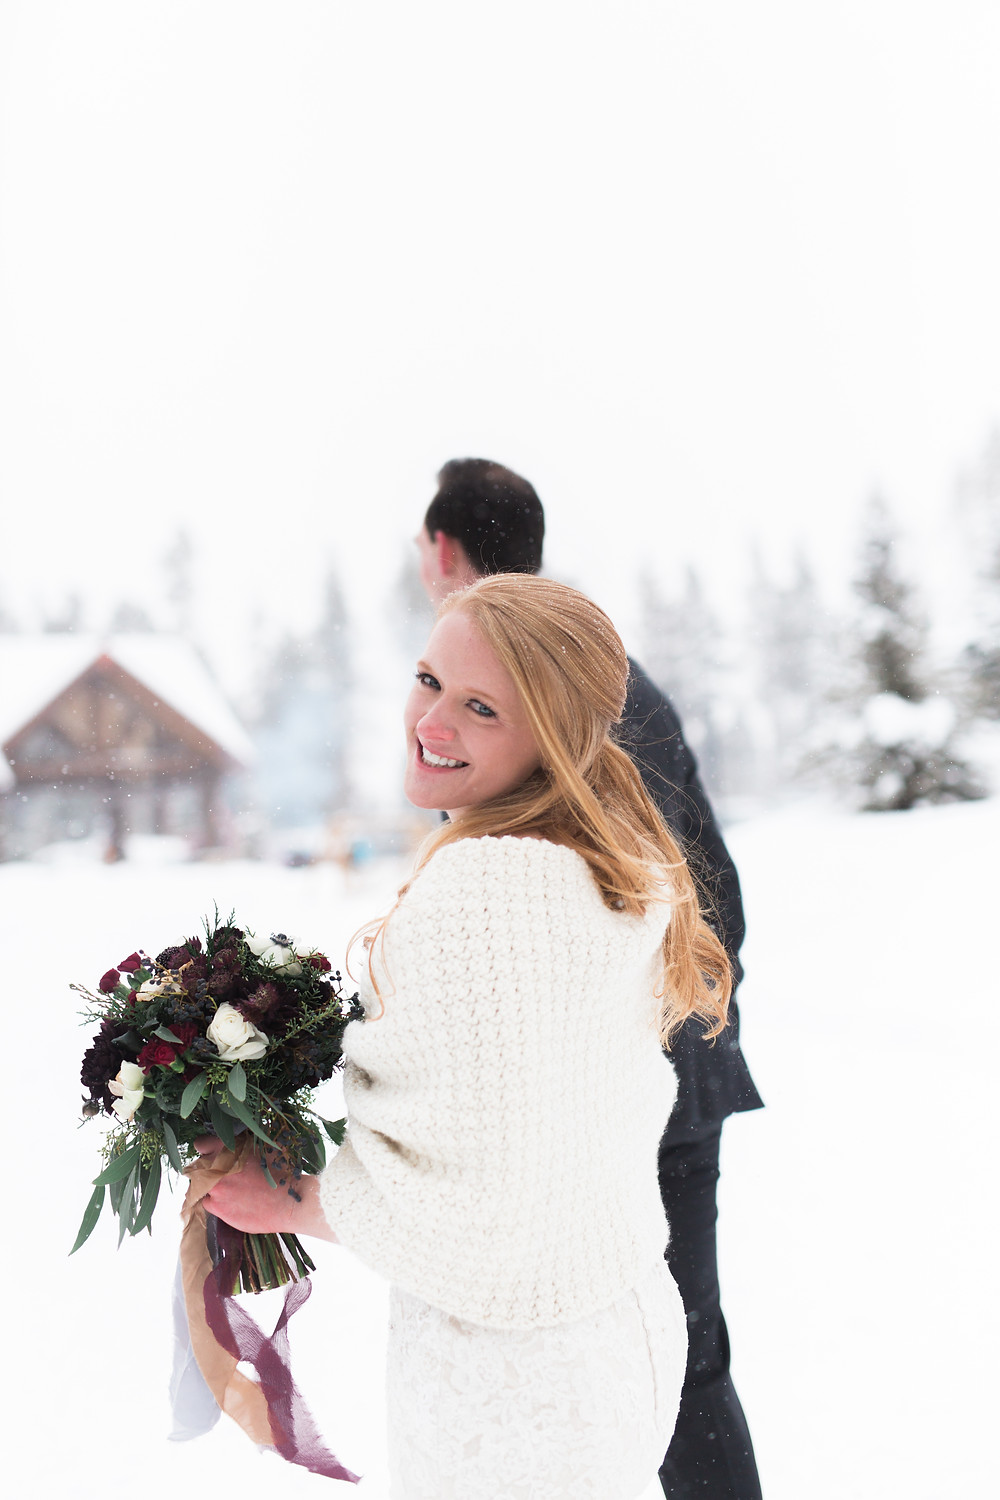 Bride and groom at their wedding at Breckenridge Nordic Center